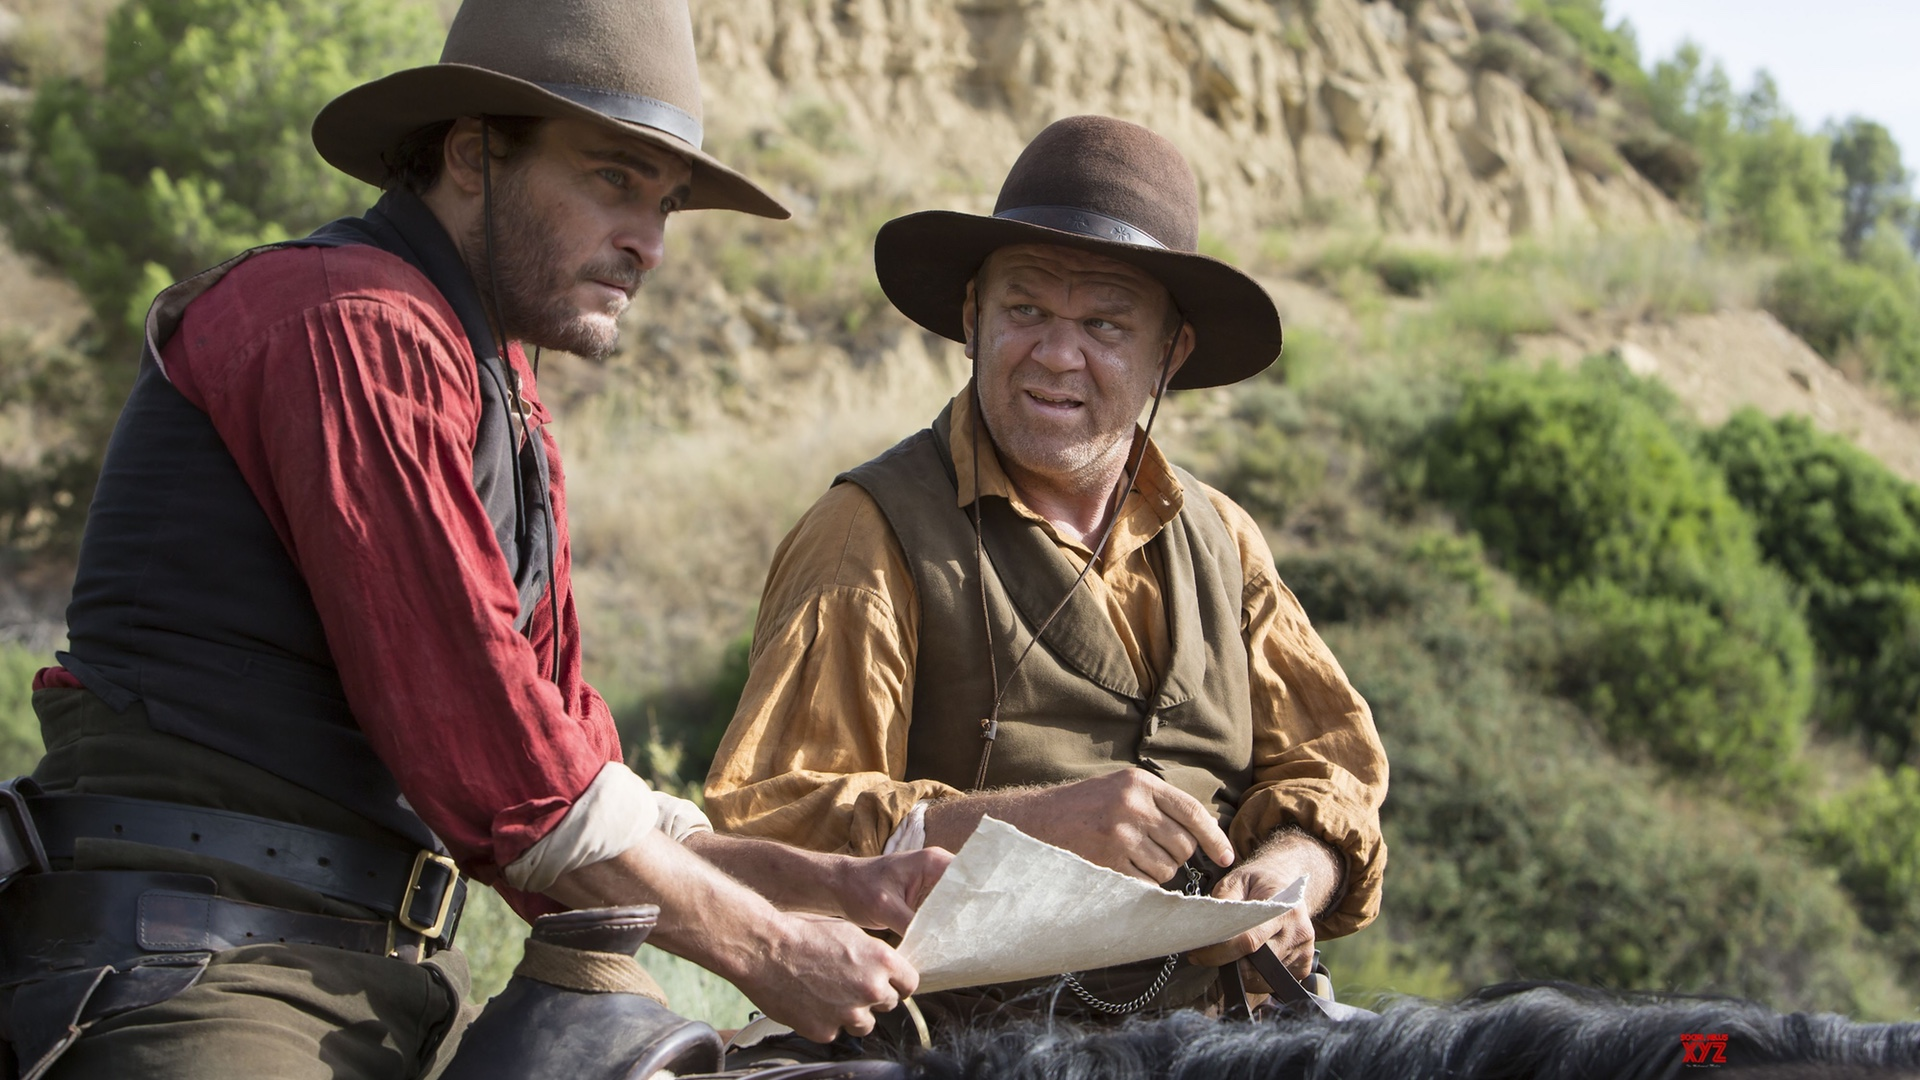 extremely-fun-trailer-for-the-dark-comedy-western-the-sisters-brothers-with-joaquin-phoenix-and-john-c-reilly-social.jpg